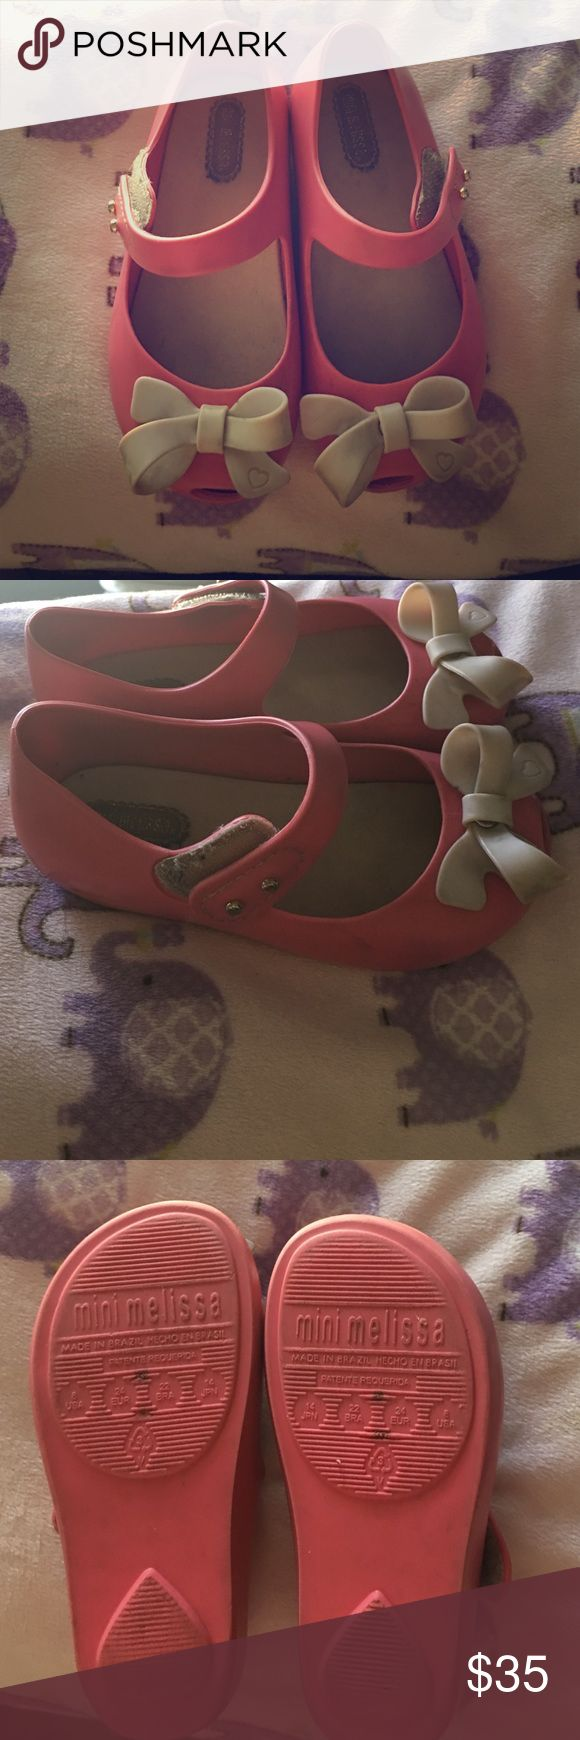 Pink Mini Mellisa shoe Size 8 used still in good condition mini melissa shoe, pink with beige bow on front Mini Melissa Shoes Dress Shoes